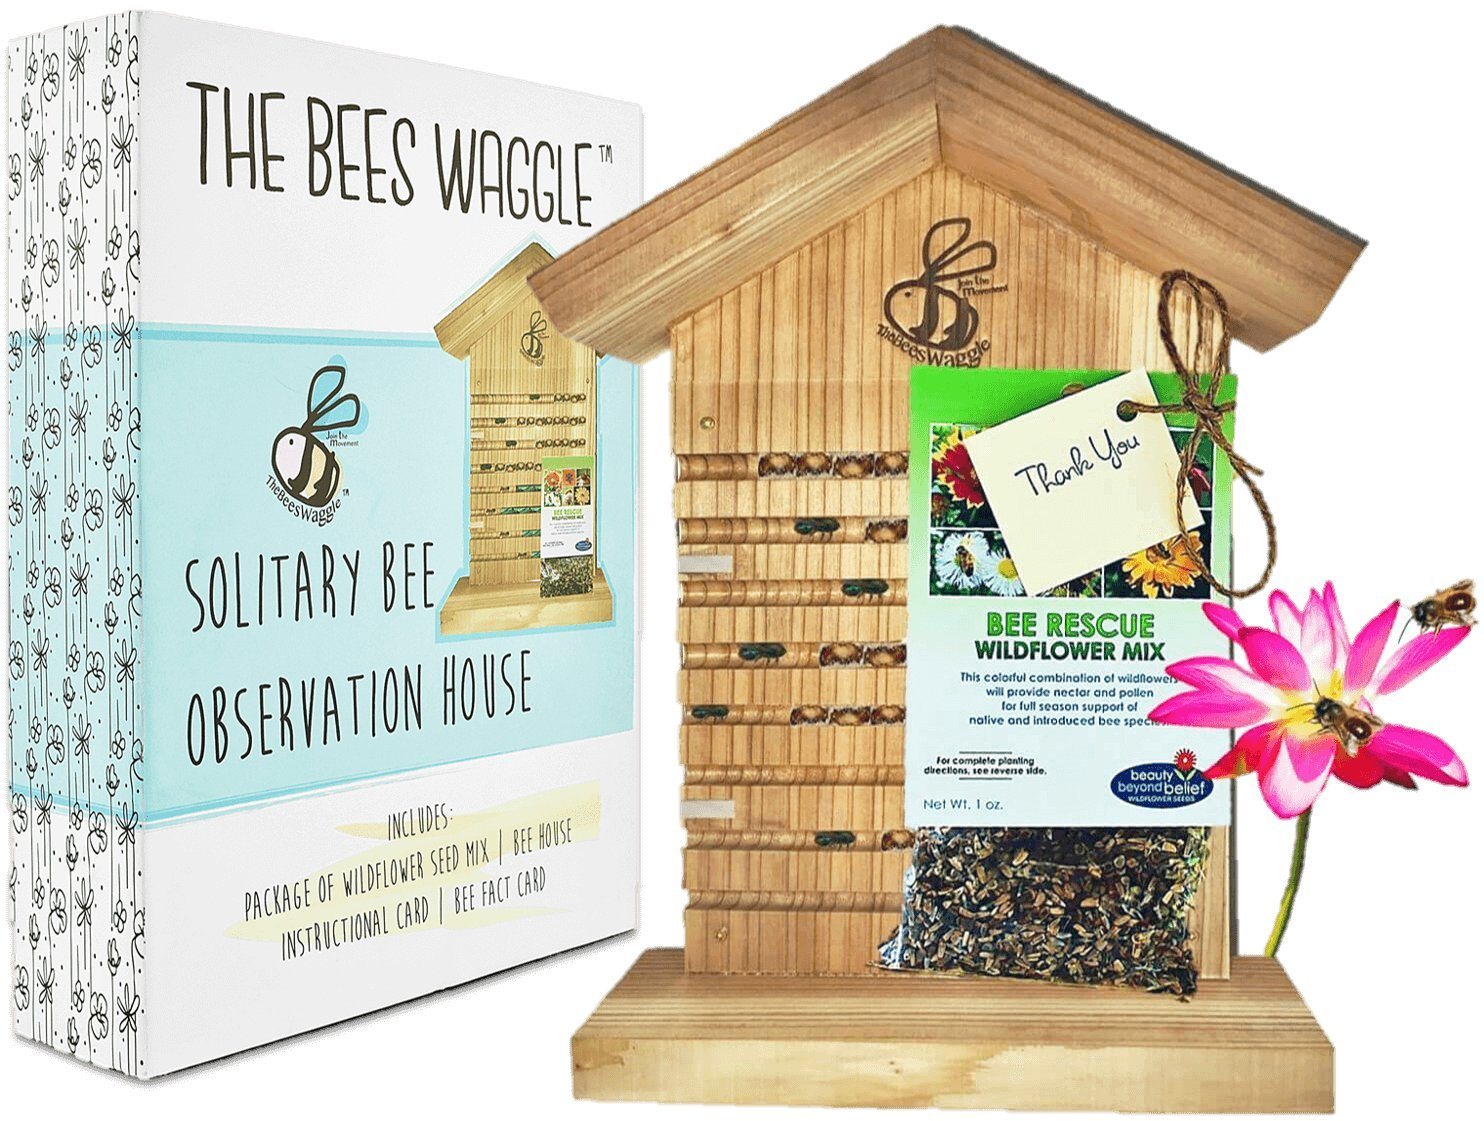 CRACK'N Special - Save $30 Now - Mason Bee House for Solitary Bees - Bonus Viewing Window, Wildflower Seeds, Guide - Wooden Beeblock Bee Home Nest to Attract Wild Native Bees to Garden - Great Gift by The Bees Waggle (Image #1)